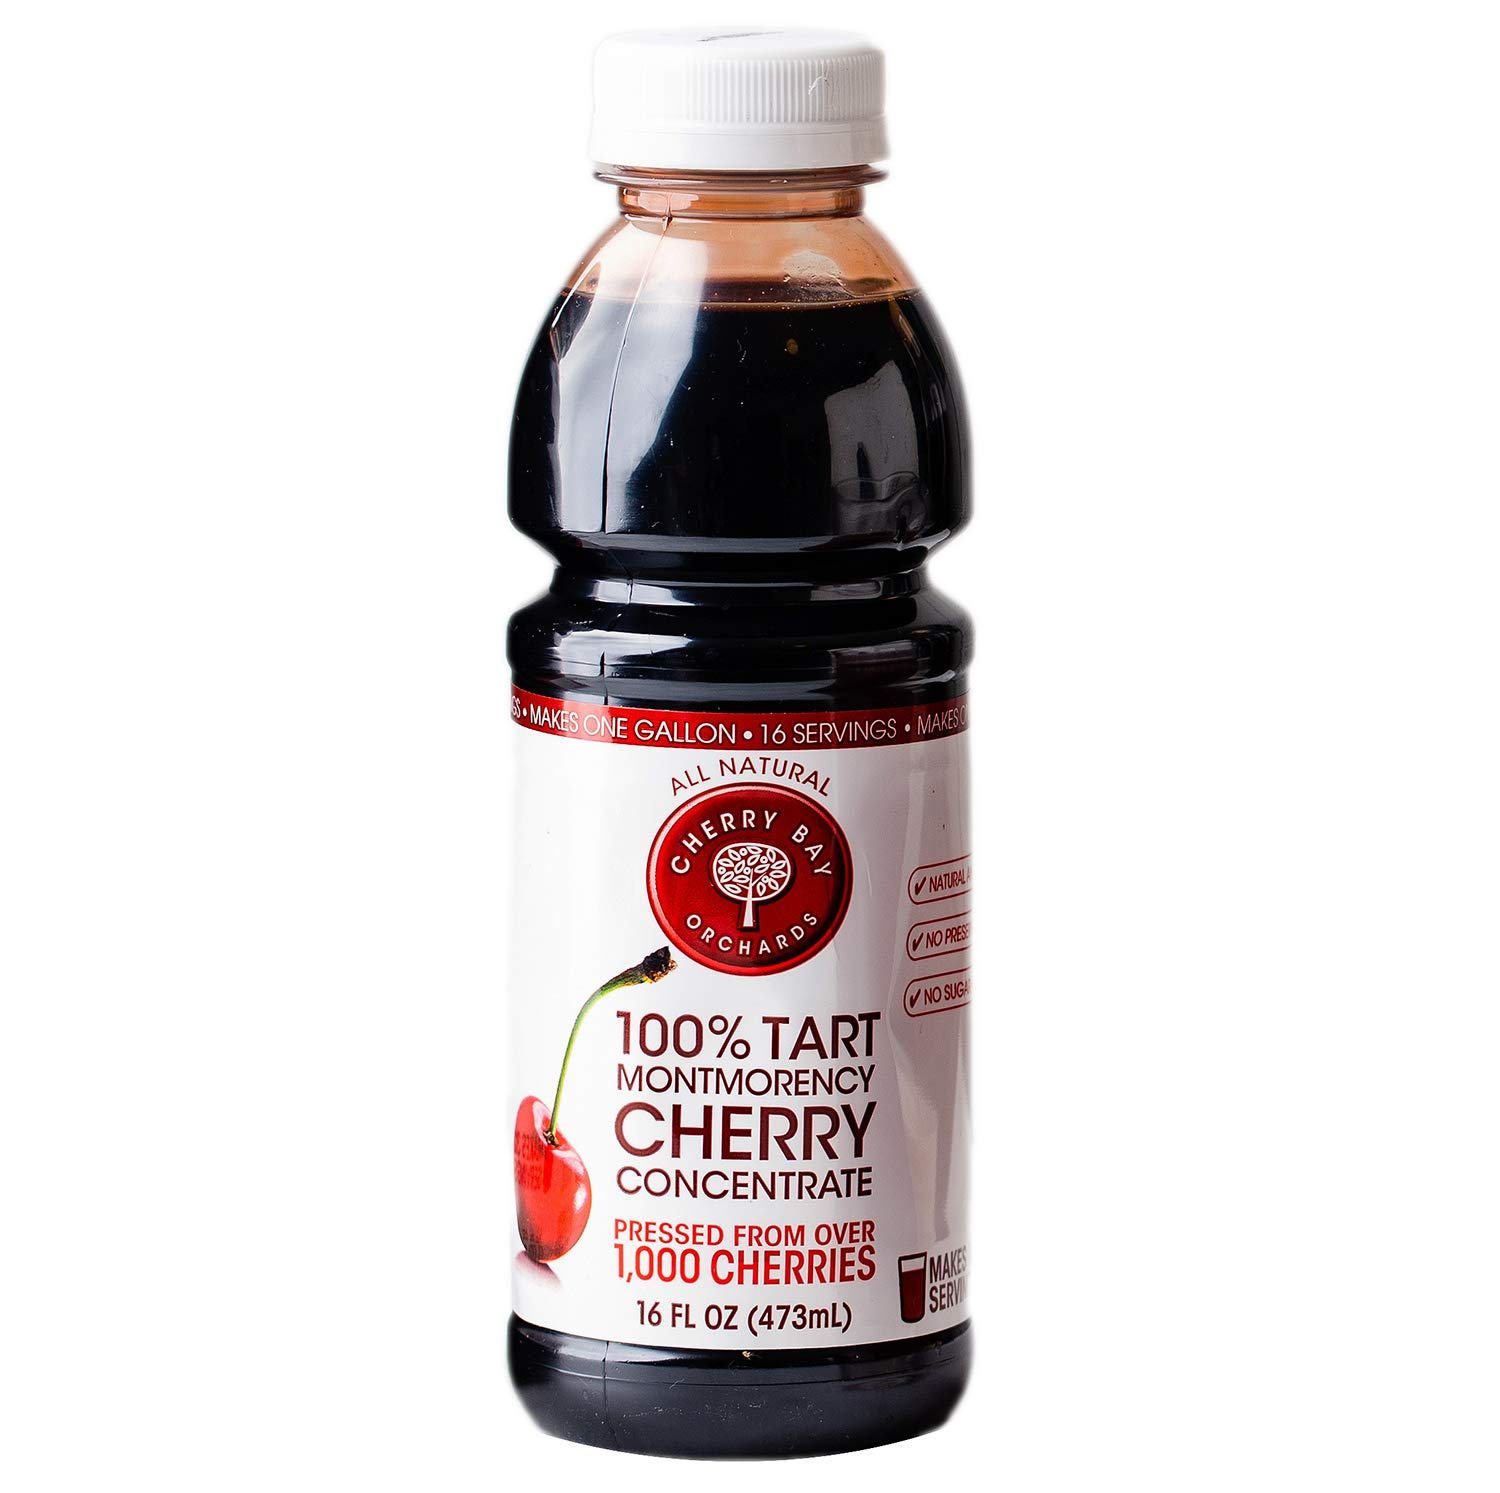 Cherry Bay Orchards Tart Cherry Concentrate - Natural Juice to Promote Healthy Sleep, 16oz Bottle